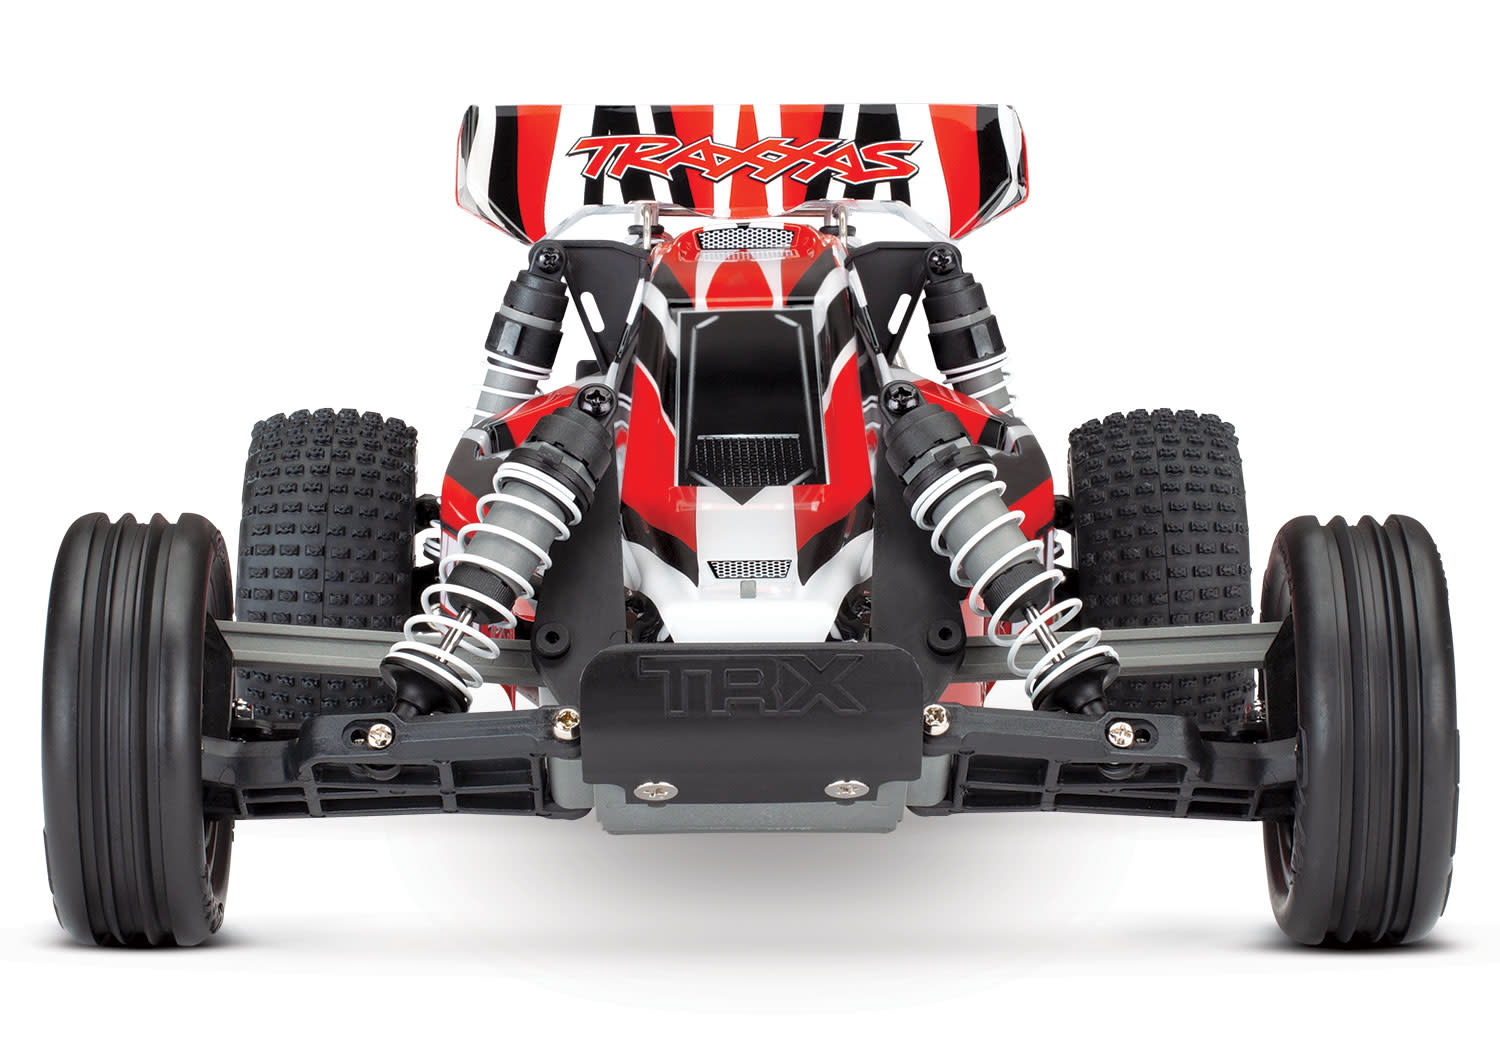 Traxxas Bandit XL-5 TQ (incl. battery/charger), Red, TRX24054-1R-8